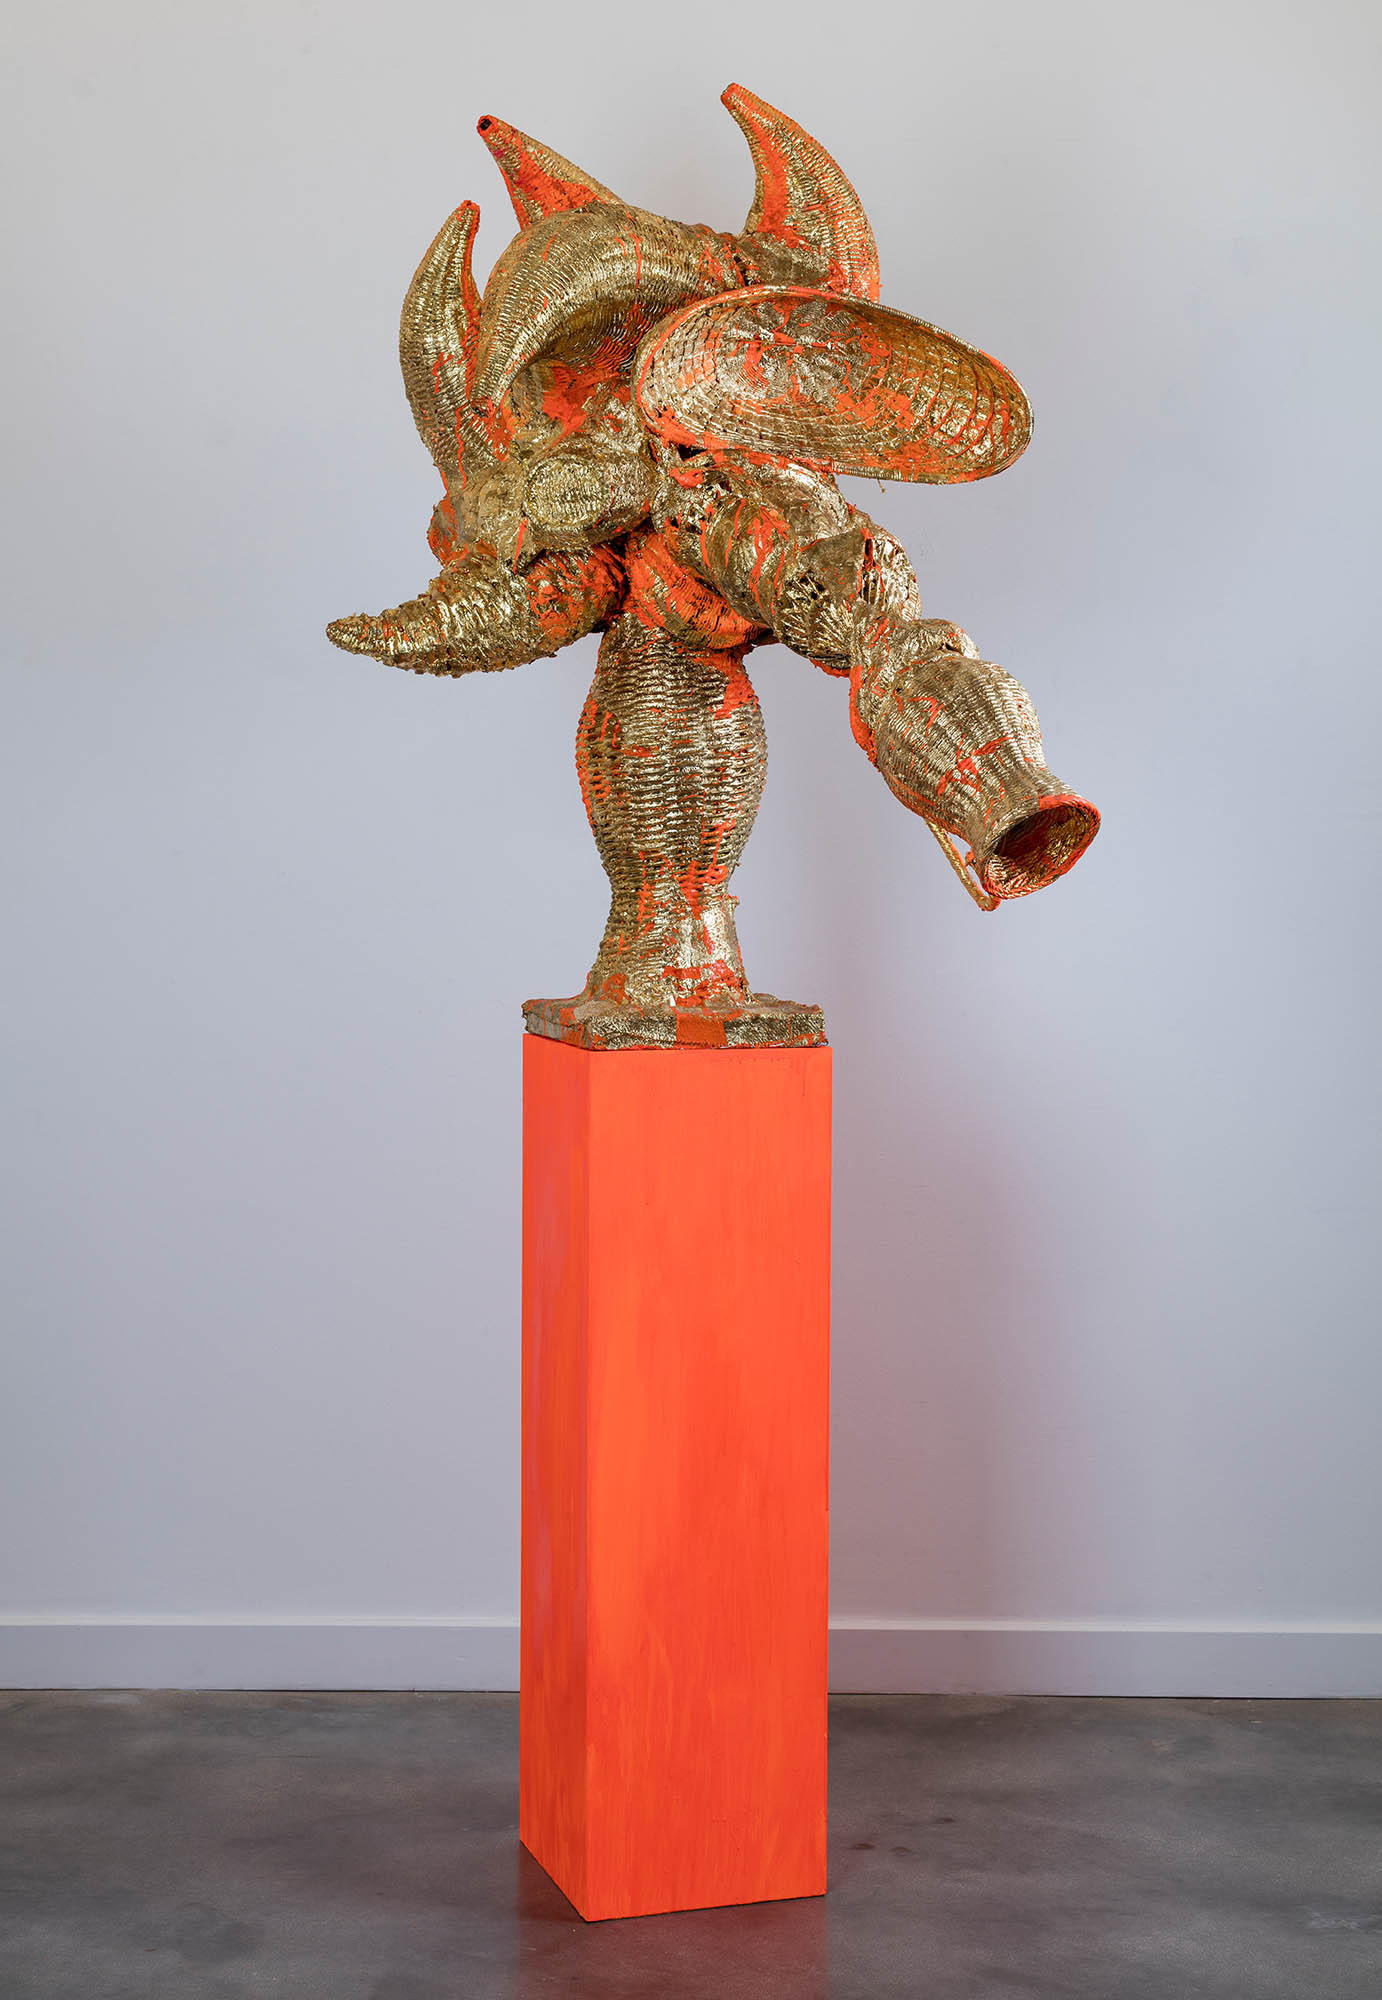 Image of Pepe Mar, Cabeza (Orange), 2010